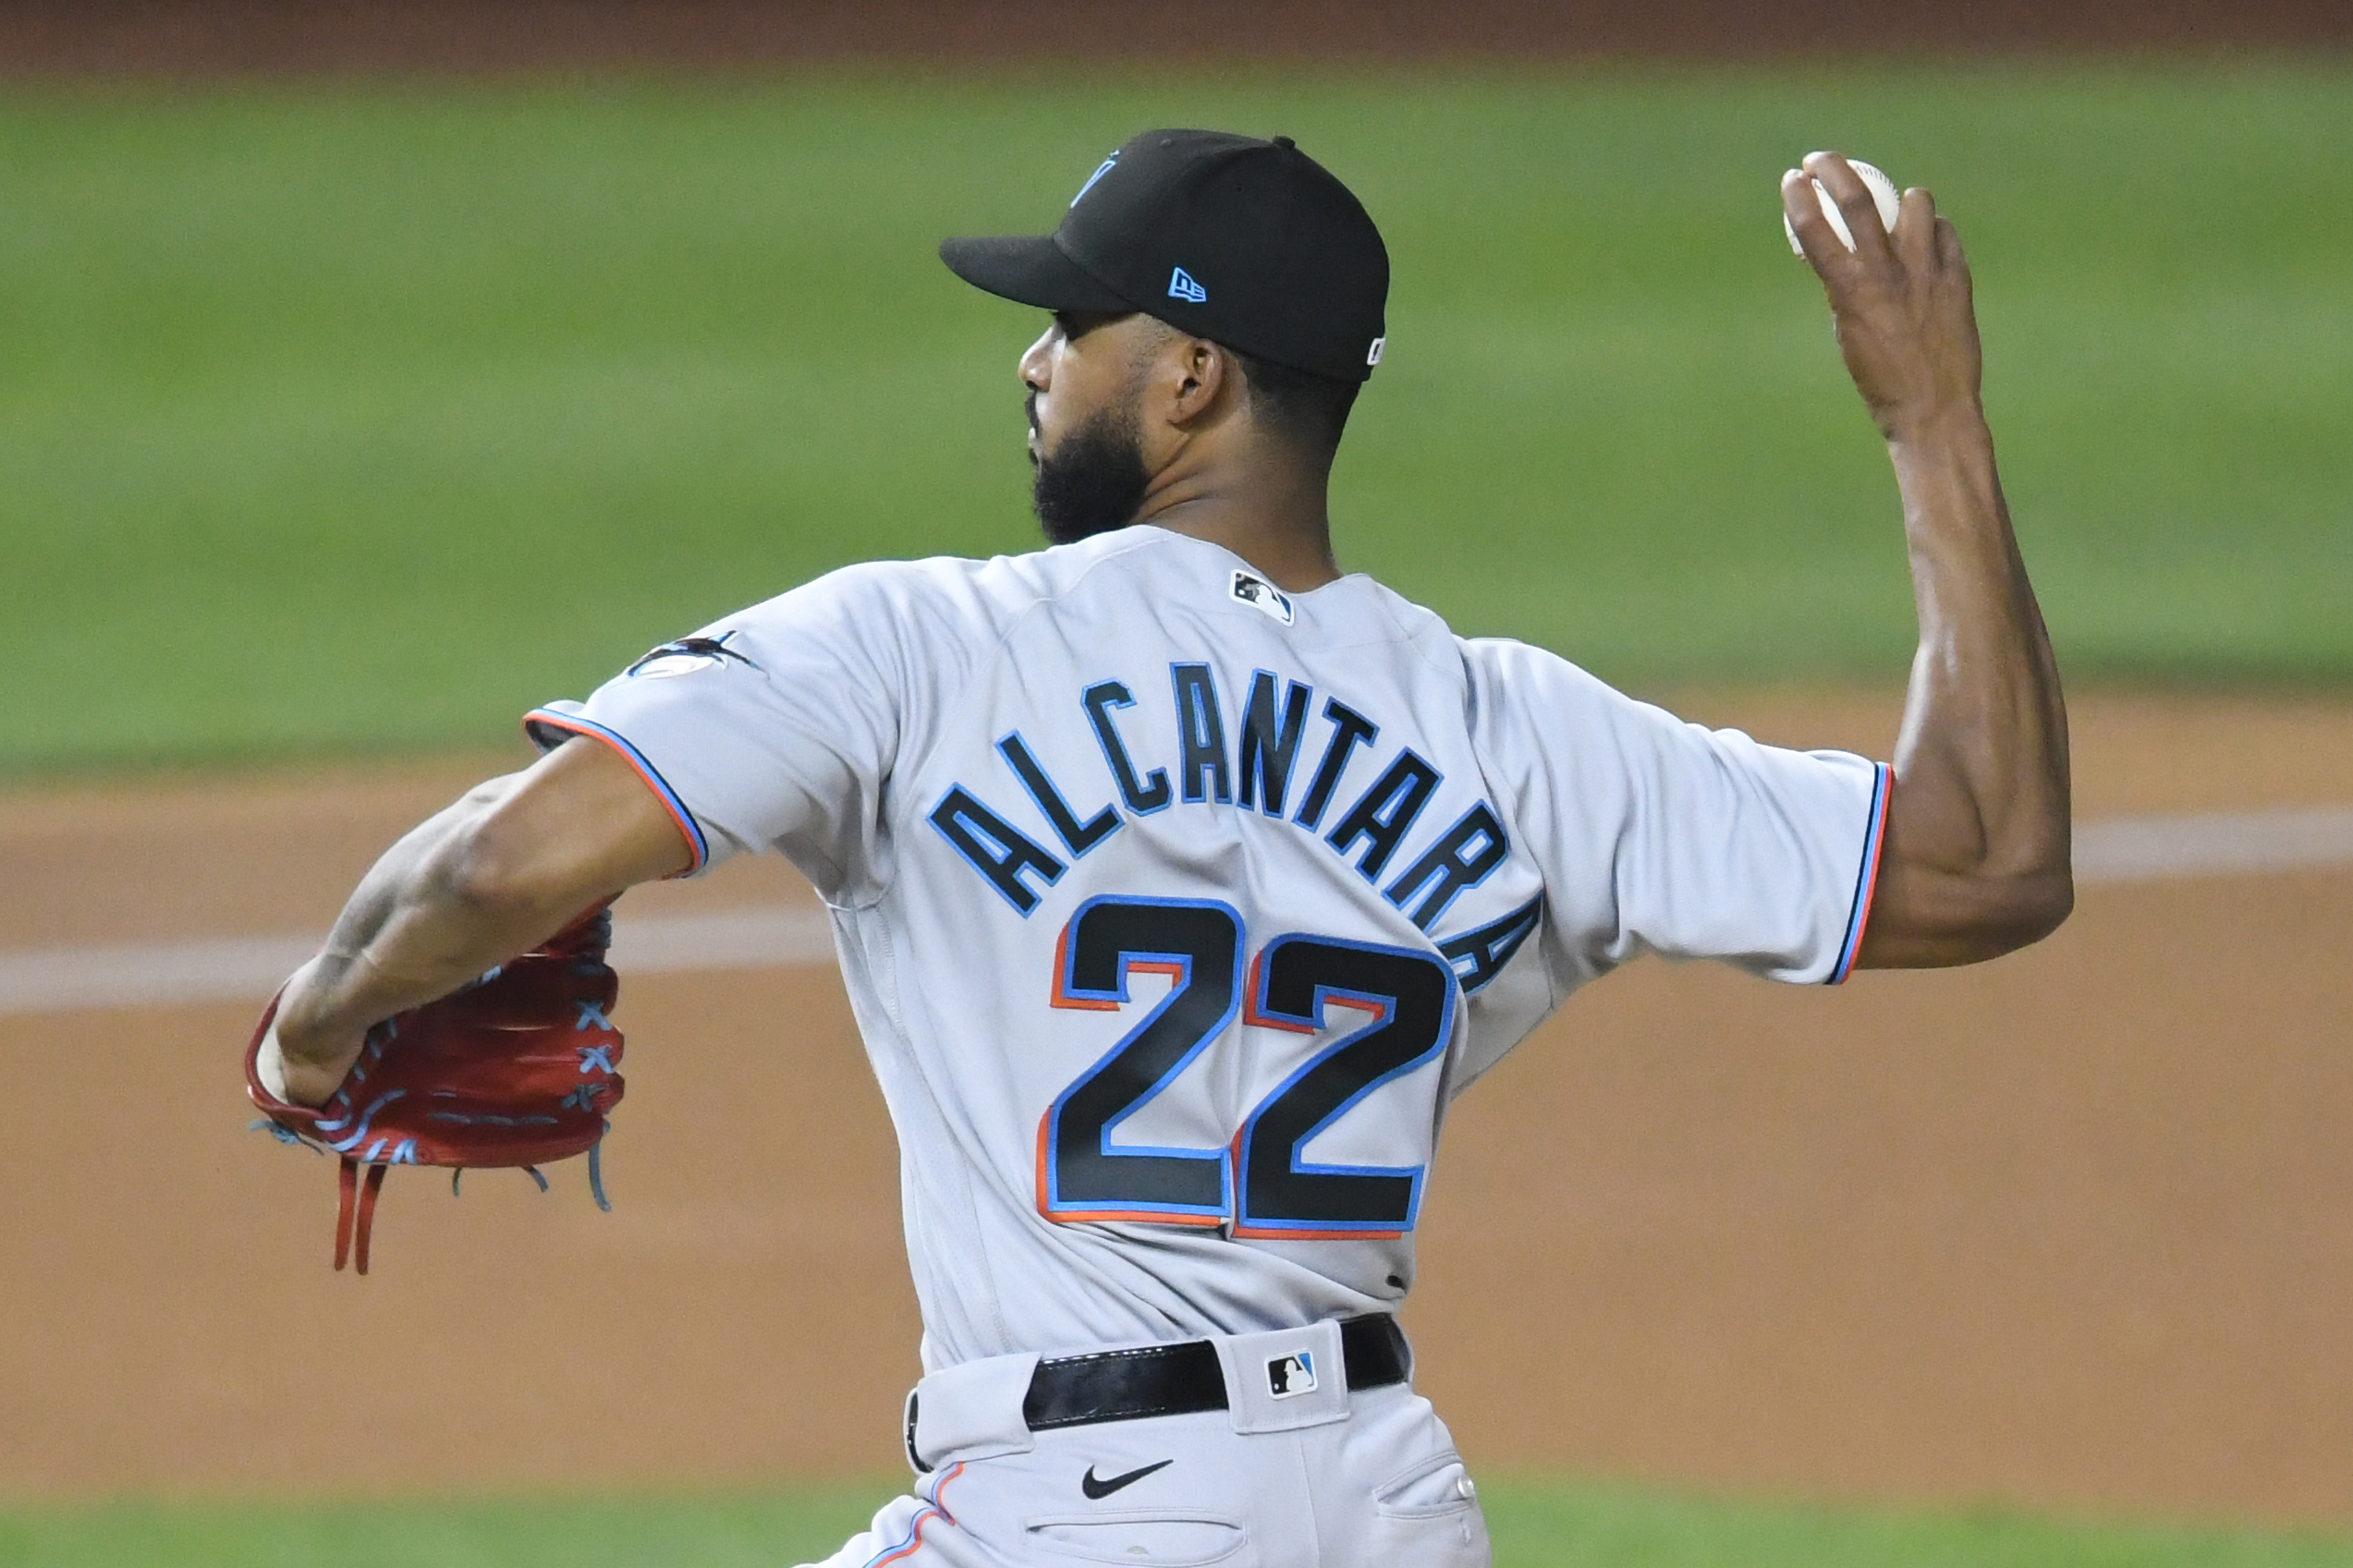 Sandy Alcantara #22 of the Miami Marlins pitches in the seventh inning during a baseball game against the Washington Nationals at Nationals Park